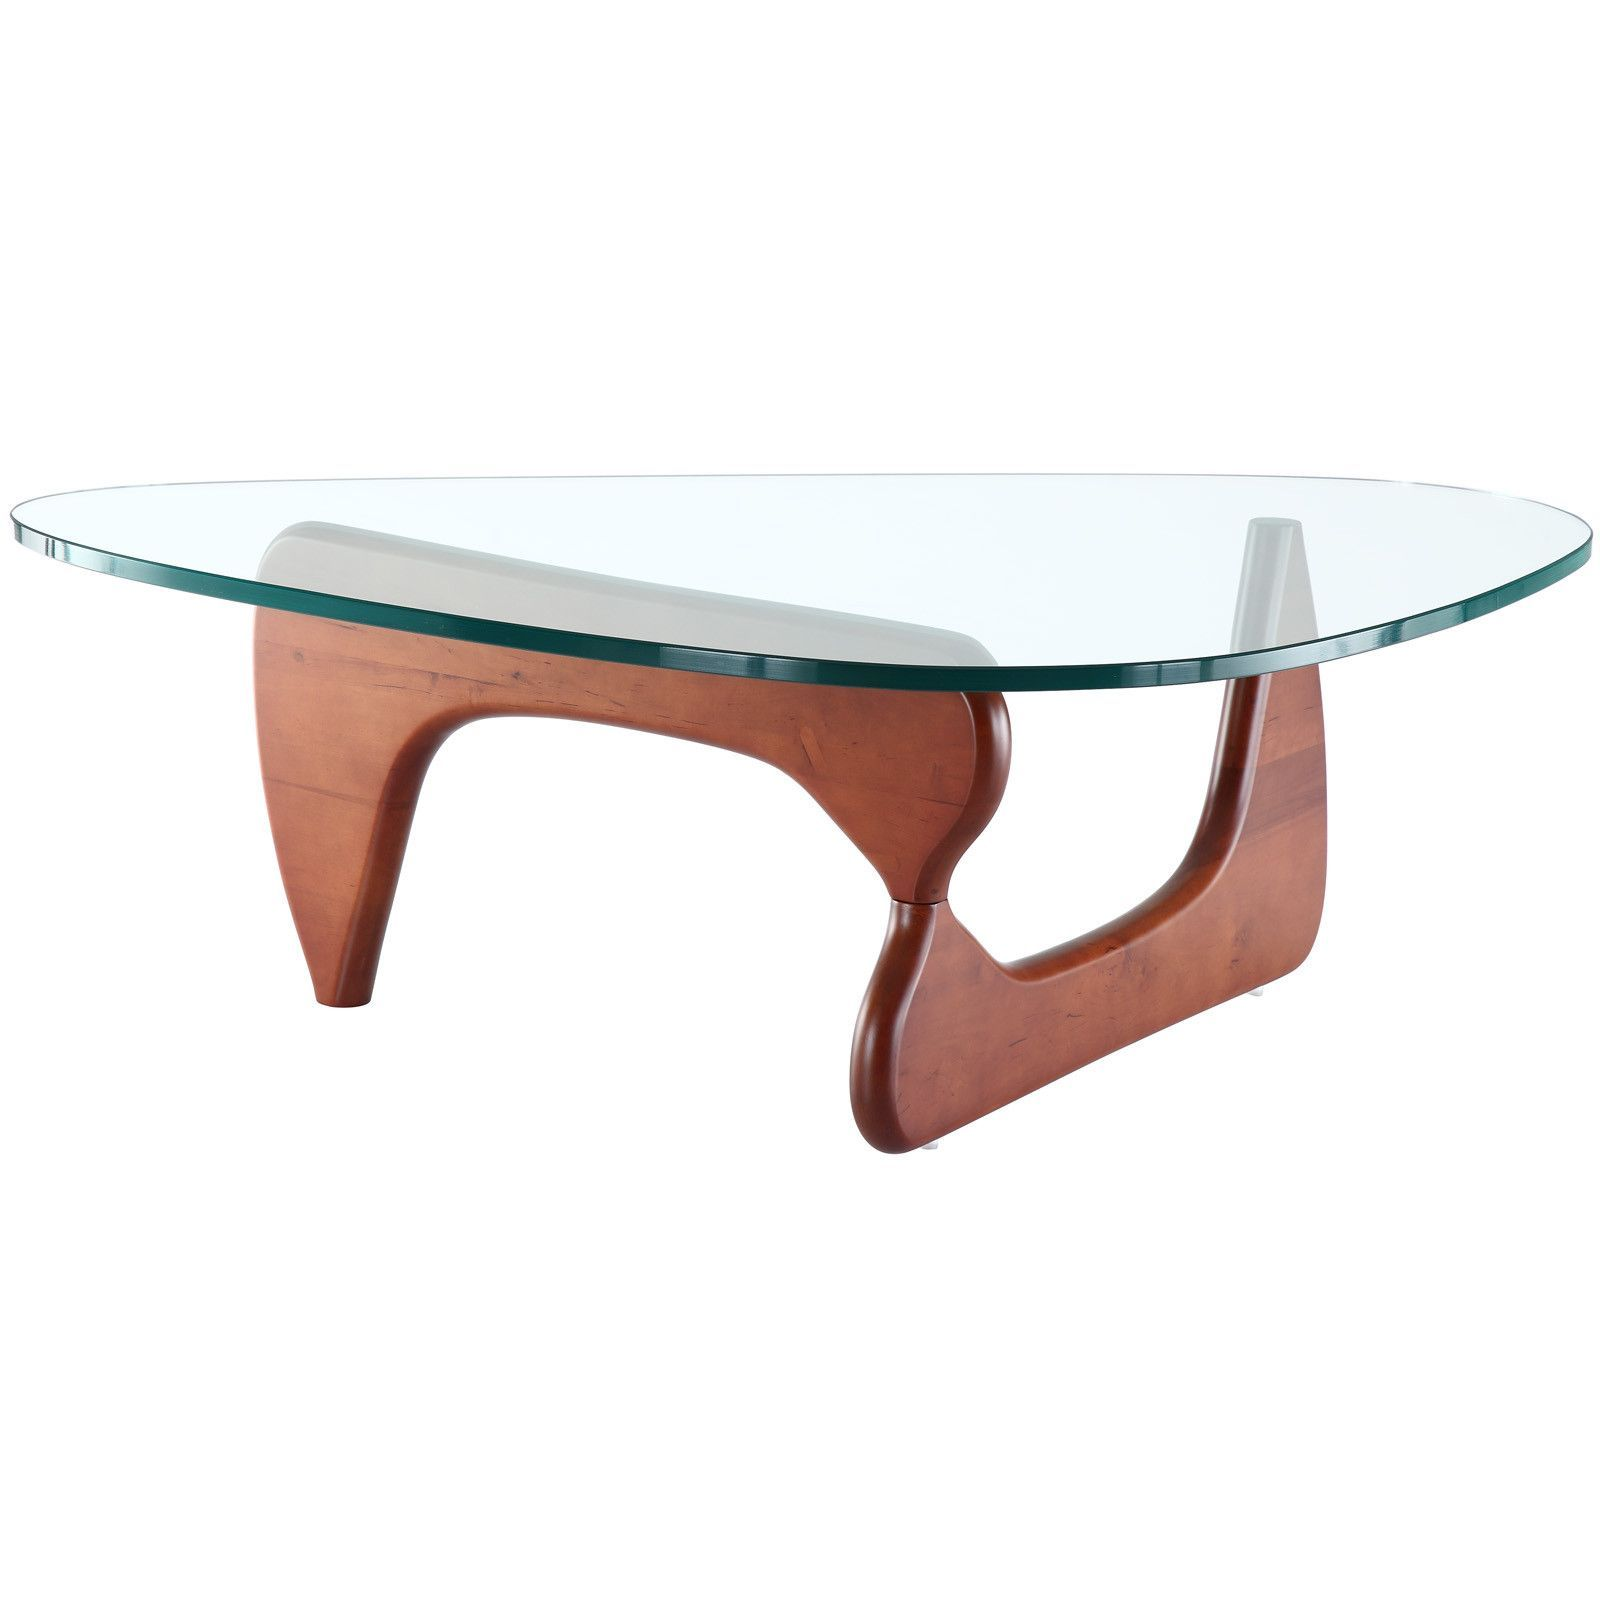 Good Noguchi Style Triangle Wood And Glass Coffee Table With Cherry Wood Base Good Ideas